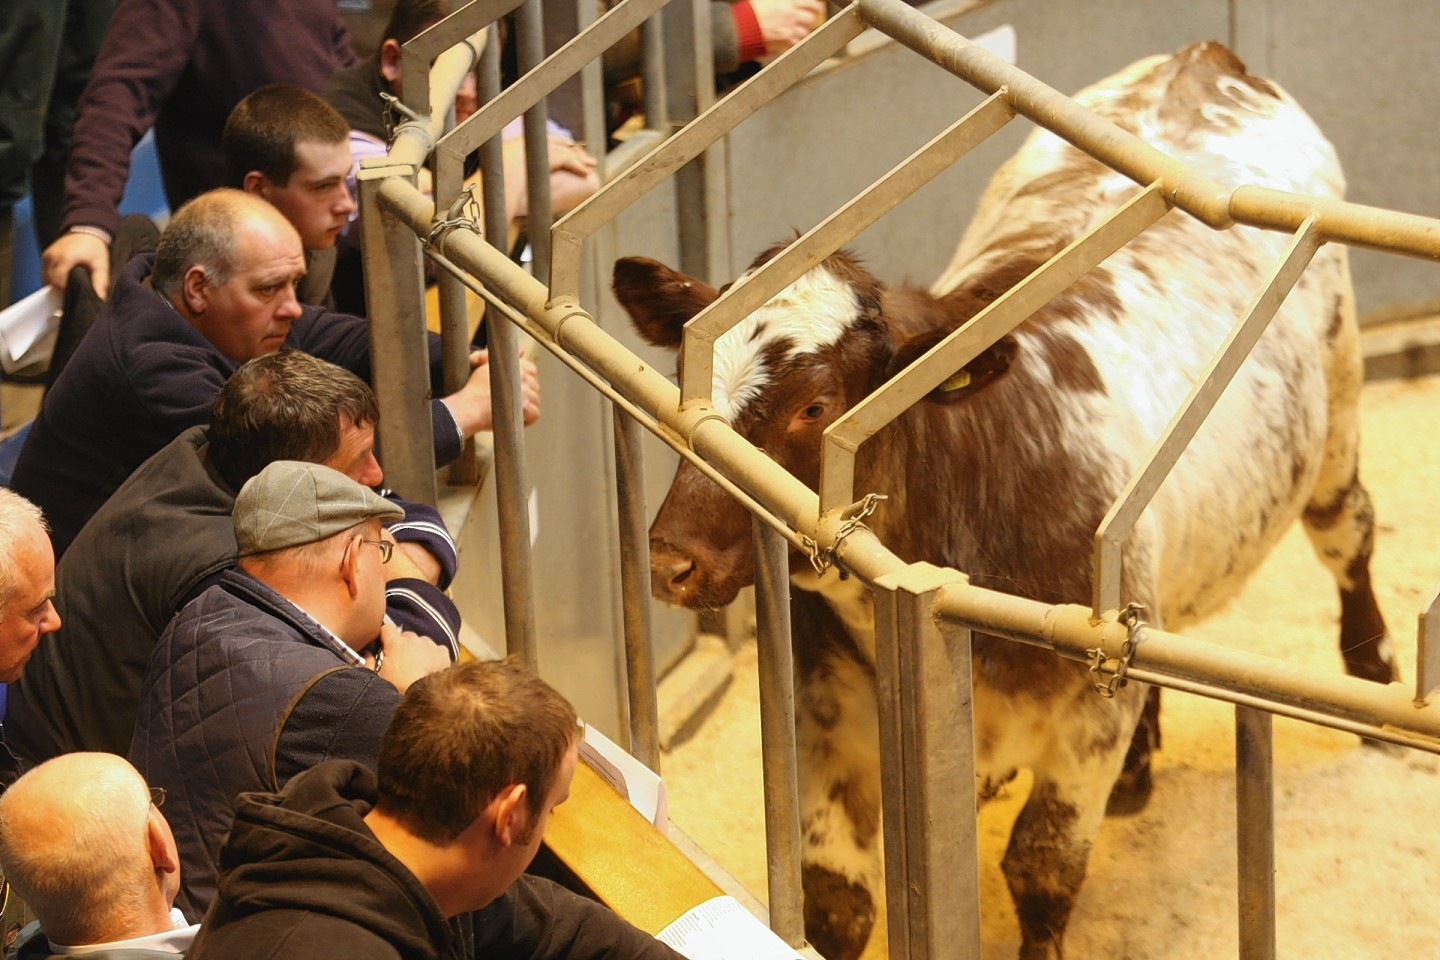 Moredun will fund livestock health and welfare projects